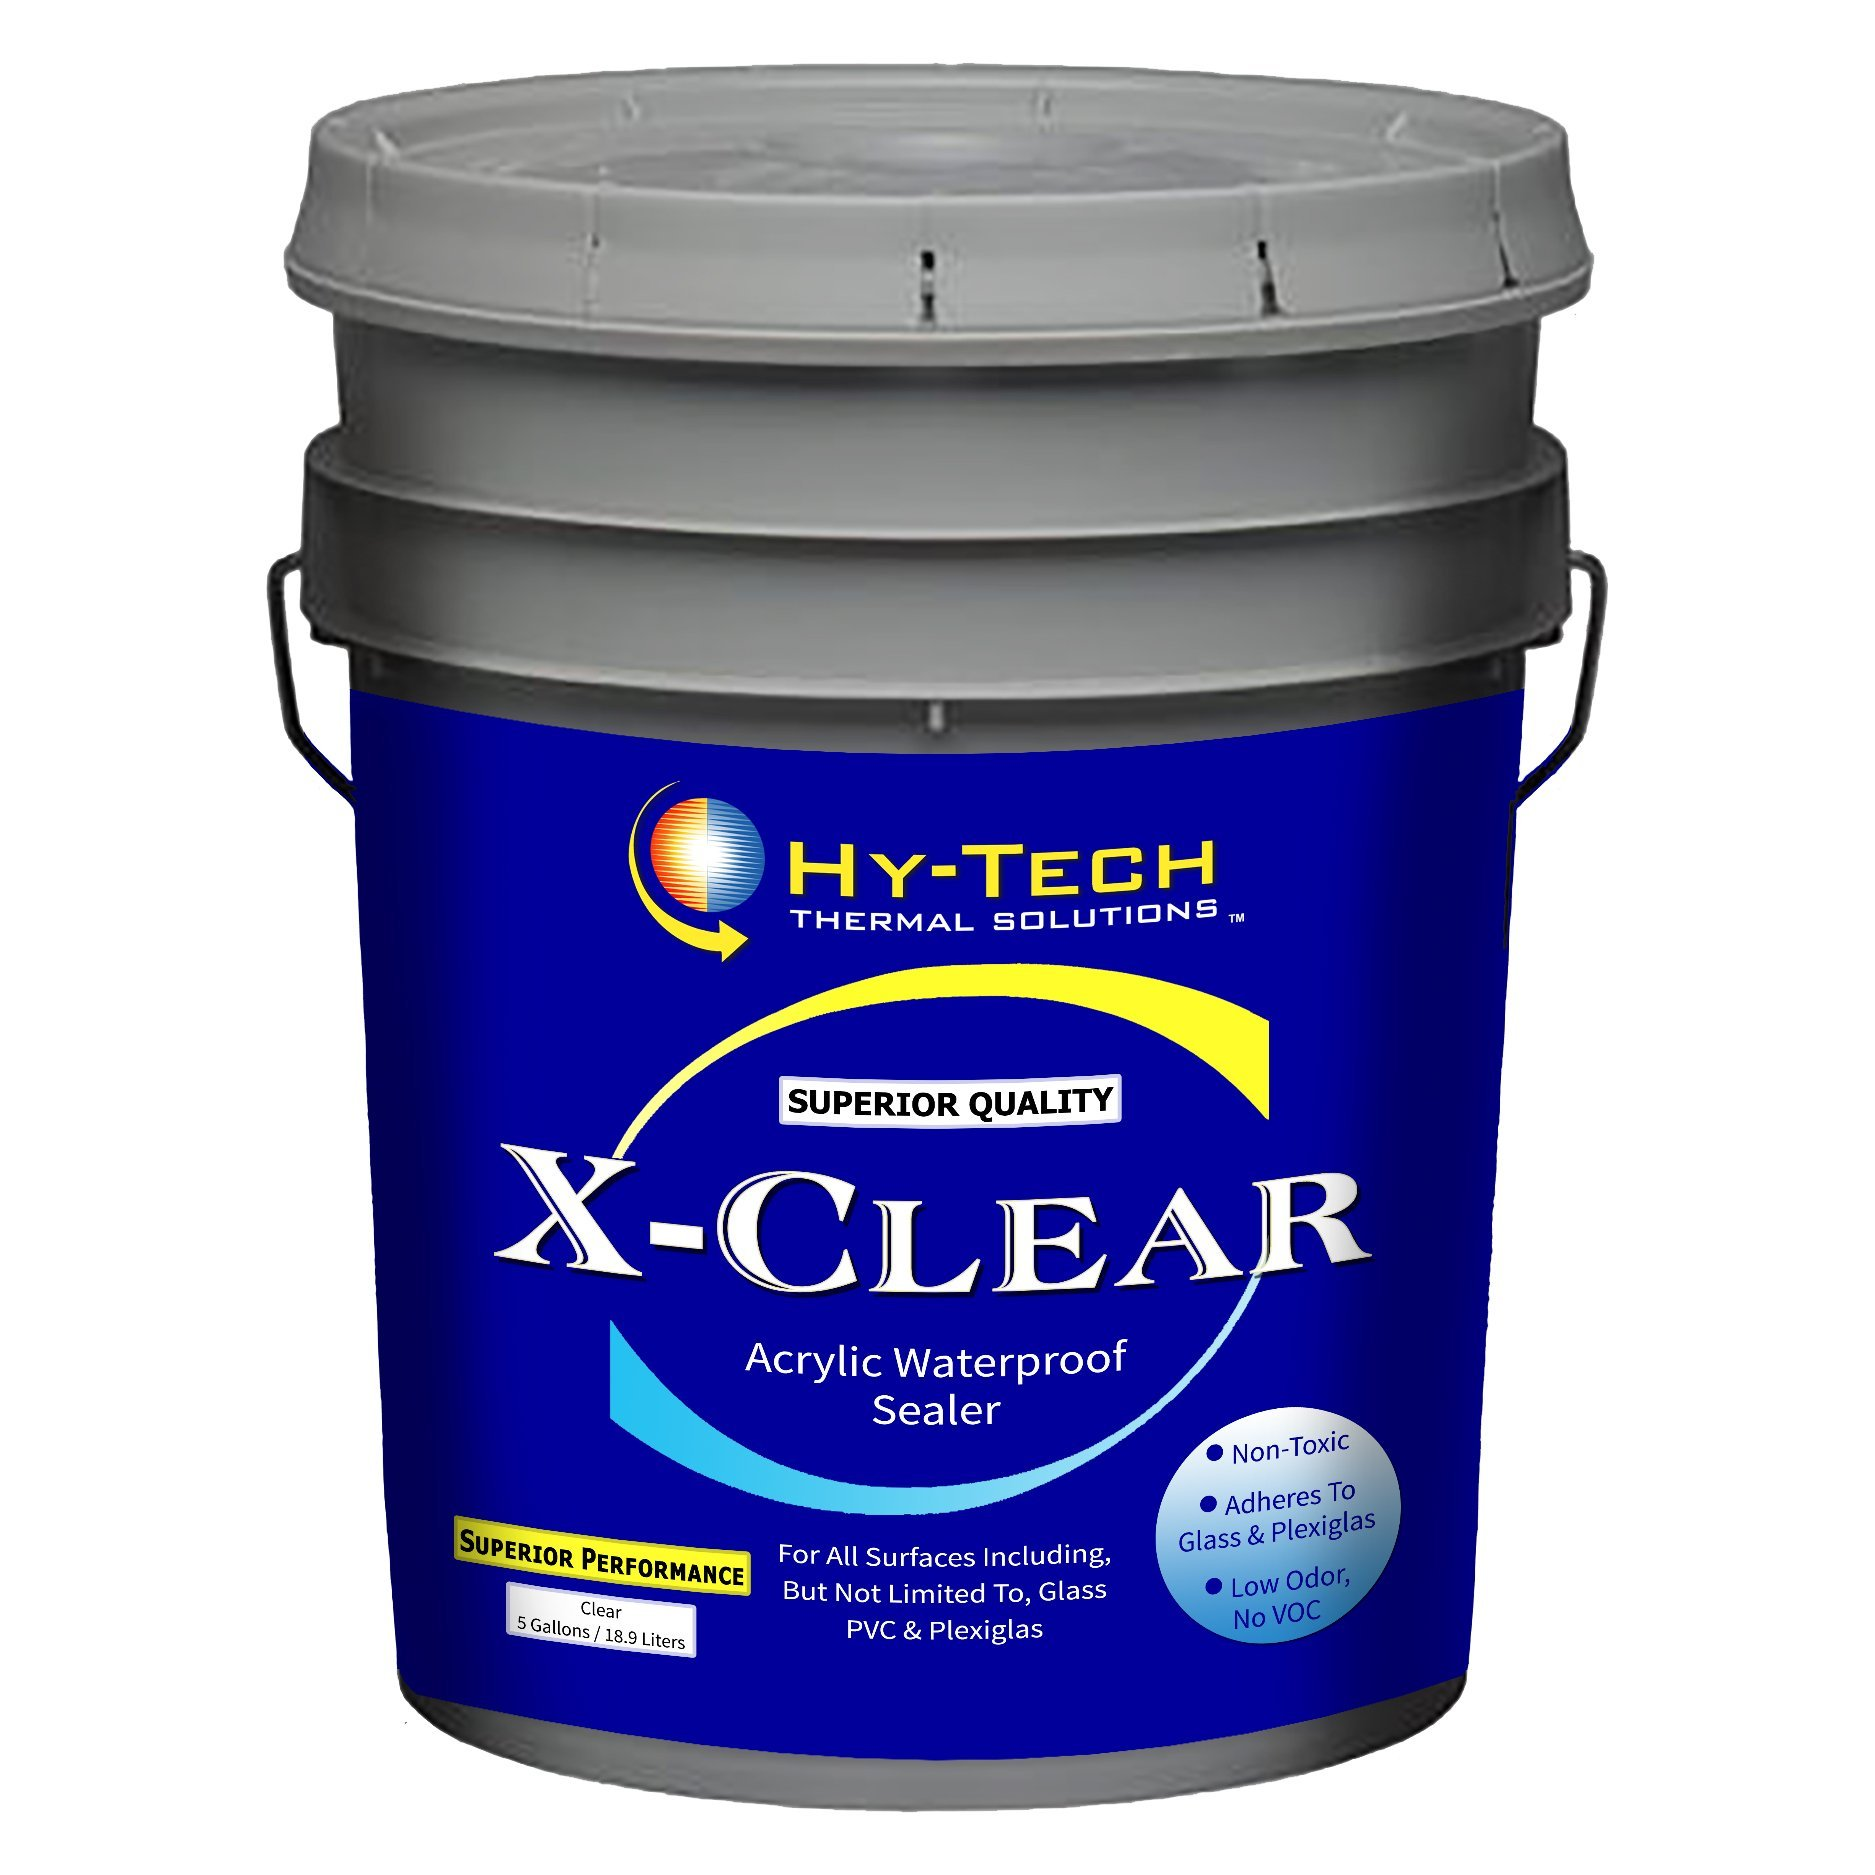 X-Clear, Clear Acrylic Sealer - 5 Gallon by Hy-Tech Thermal Solutions (Image #1)